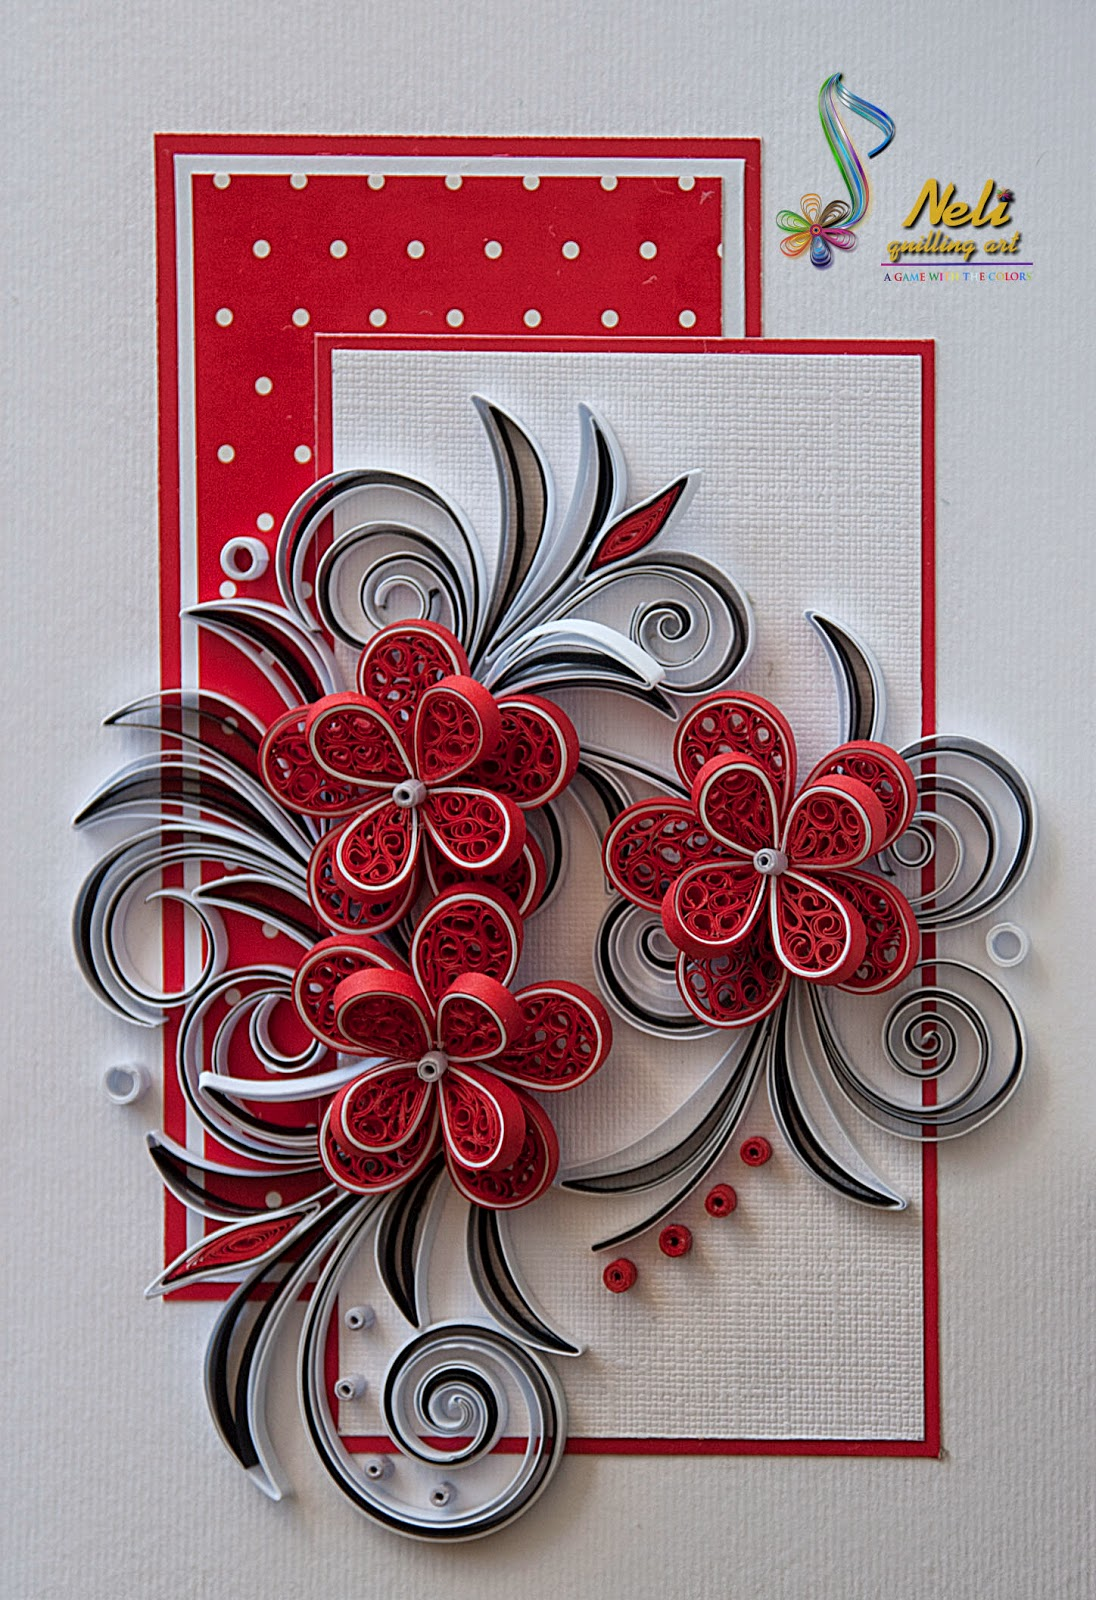 neli quilling art quilling card 14 8 cm 10 5 cm. Black Bedroom Furniture Sets. Home Design Ideas